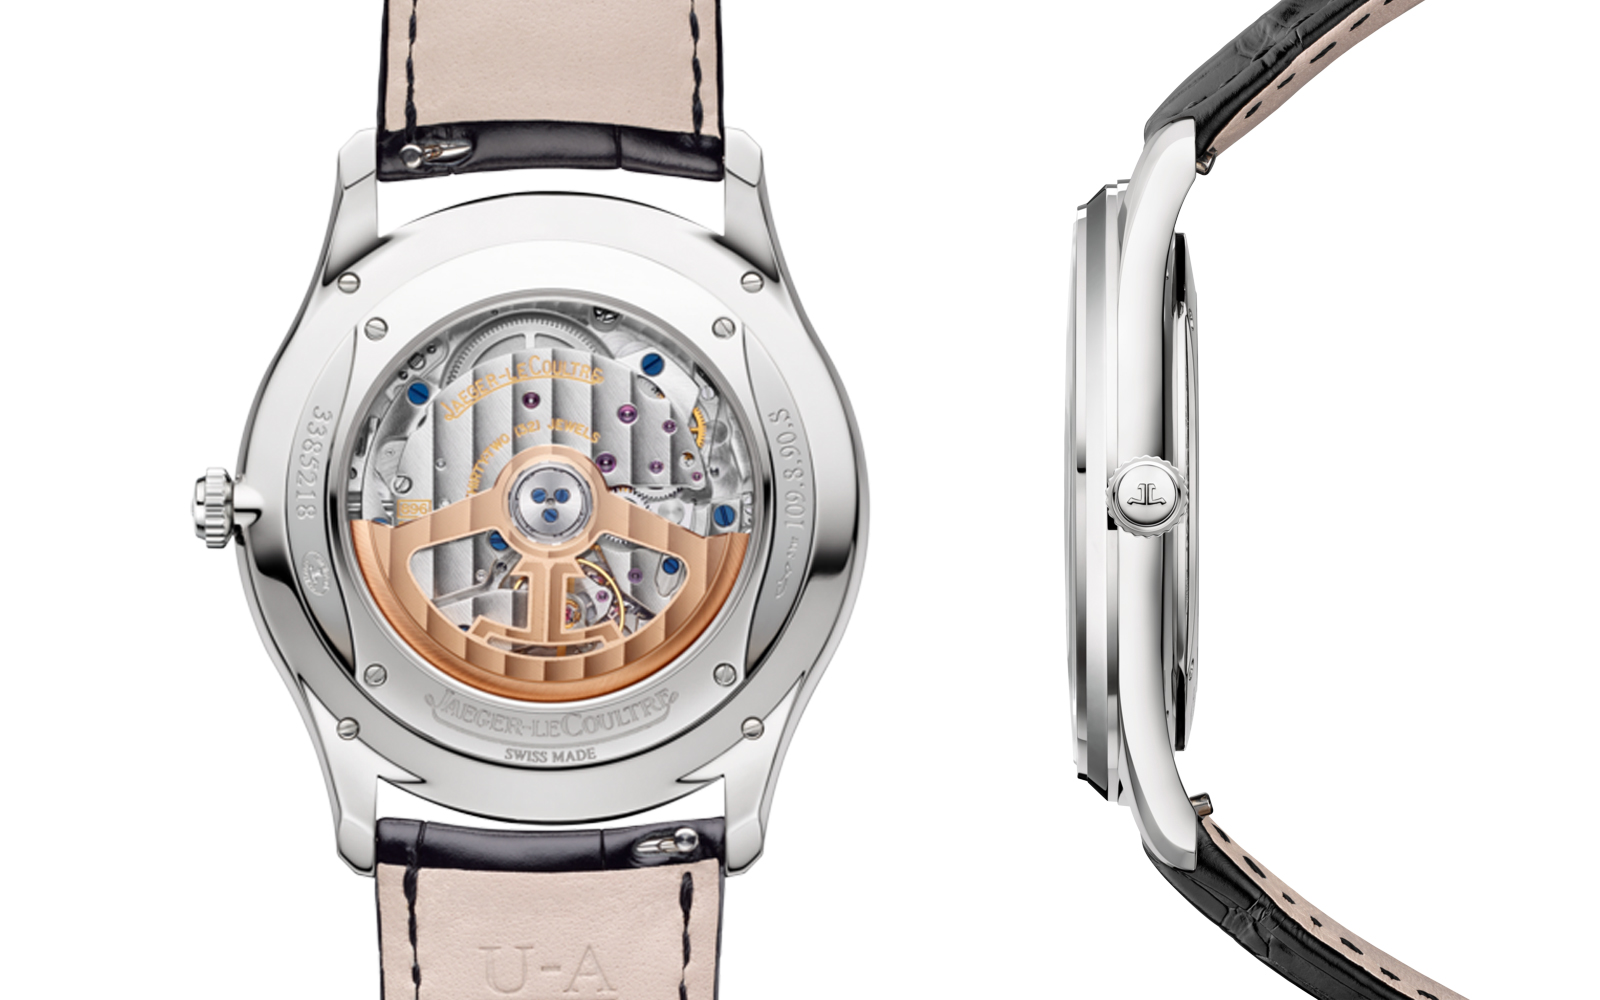 MASTER ULTRA THIN SMALL SECONDS 1218420 - feature